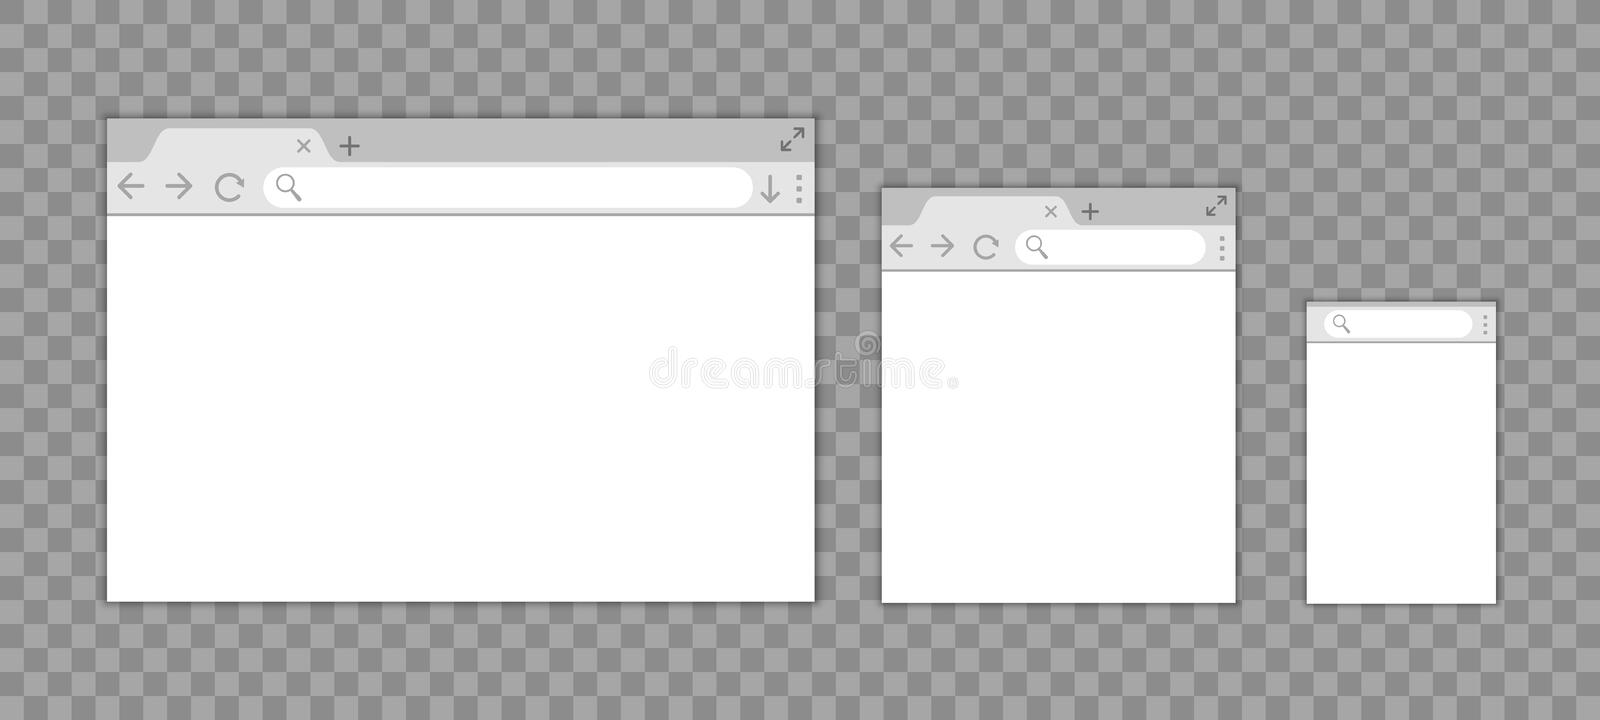 Simple browser window in a flat style, design a simple blank web page, search in internet, template browser window on computer vector illustration